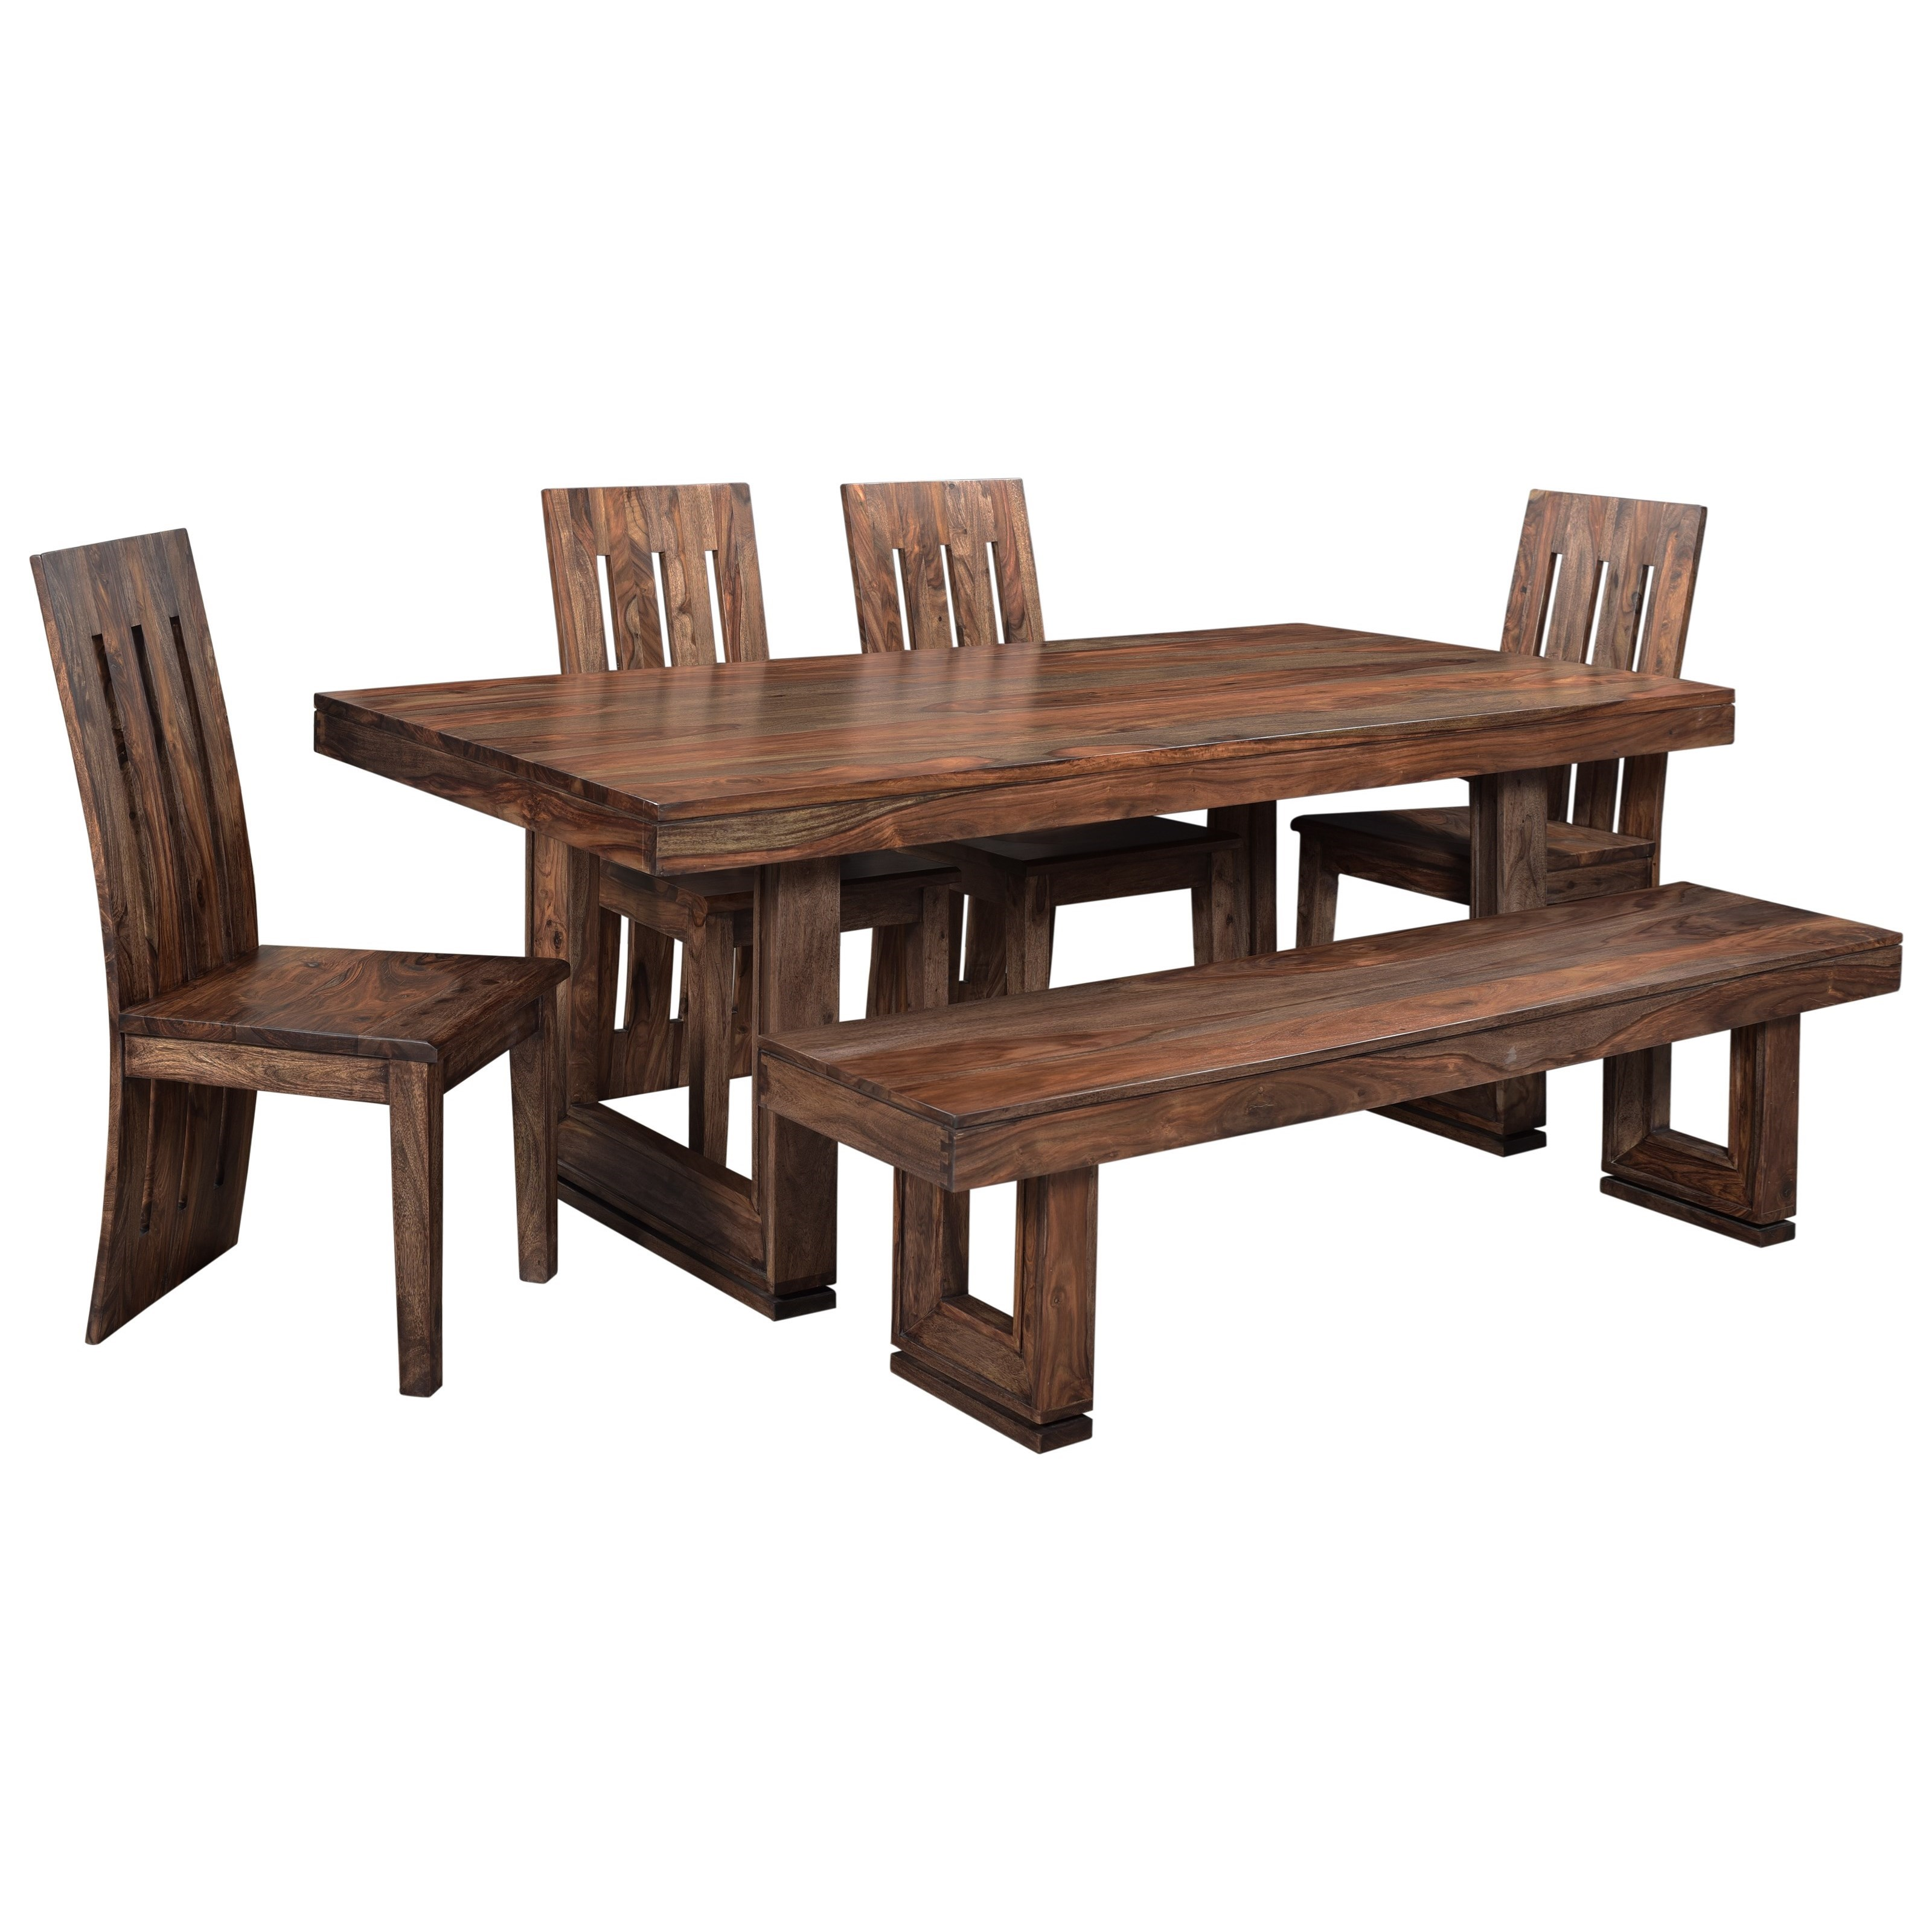 Brownstone Table and Chair Set with Bench by Coast to Coast Imports at Johnny Janosik